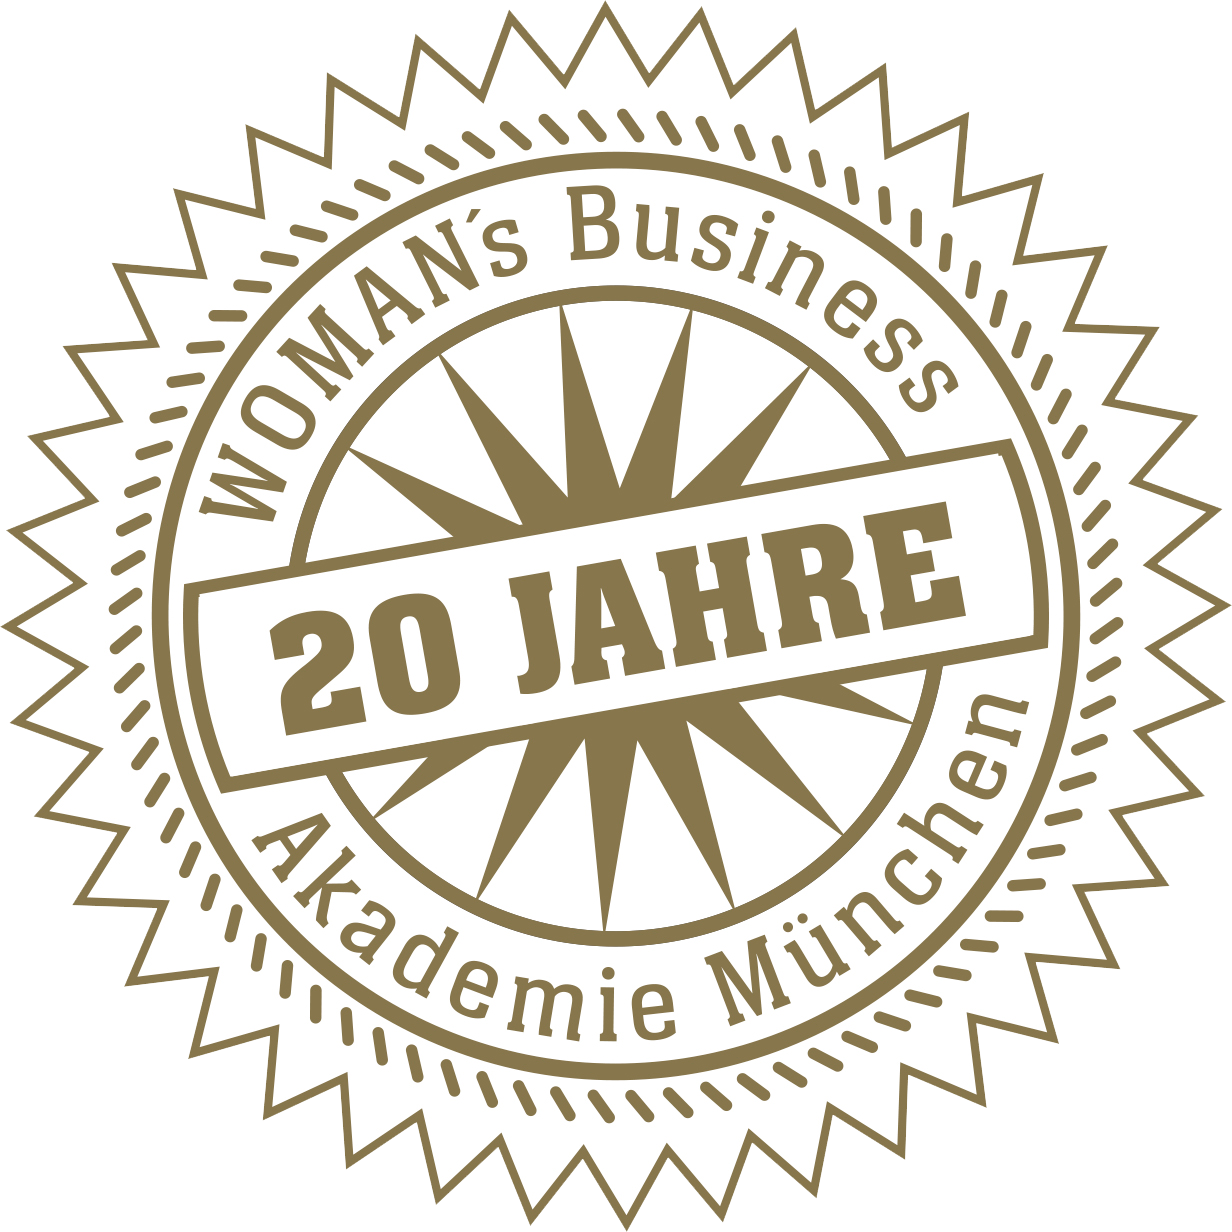 20 Jahre WOMANs Business Akademie